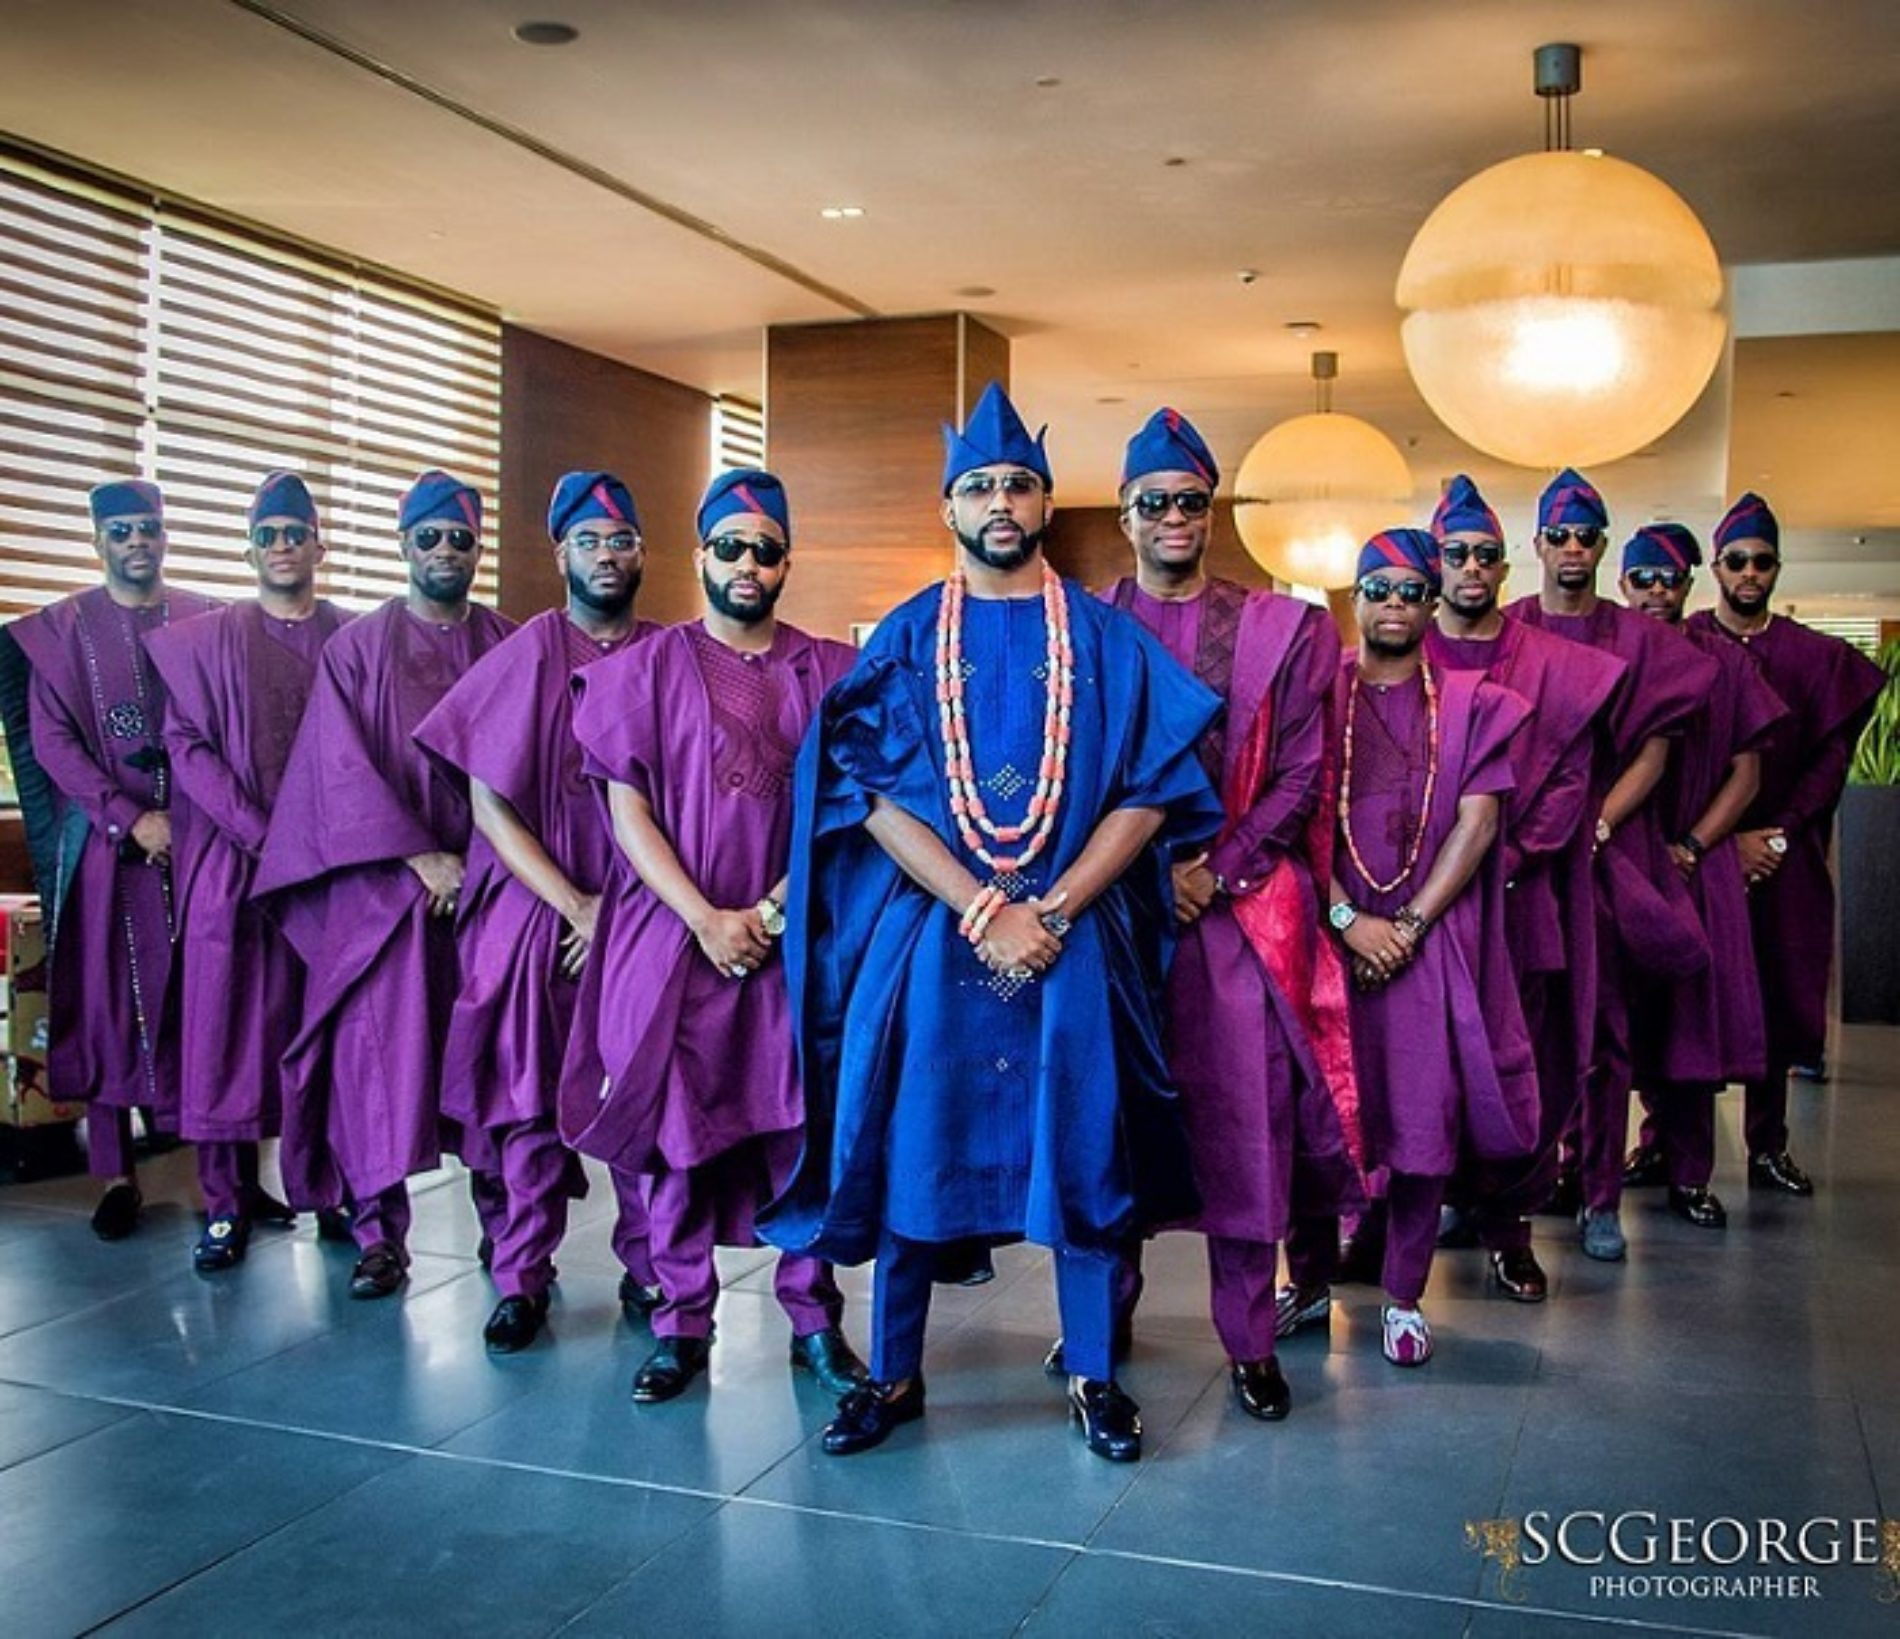 Photos: All The Purple and the Men at Banky W's Traditional Wedding to Adesua Etomi